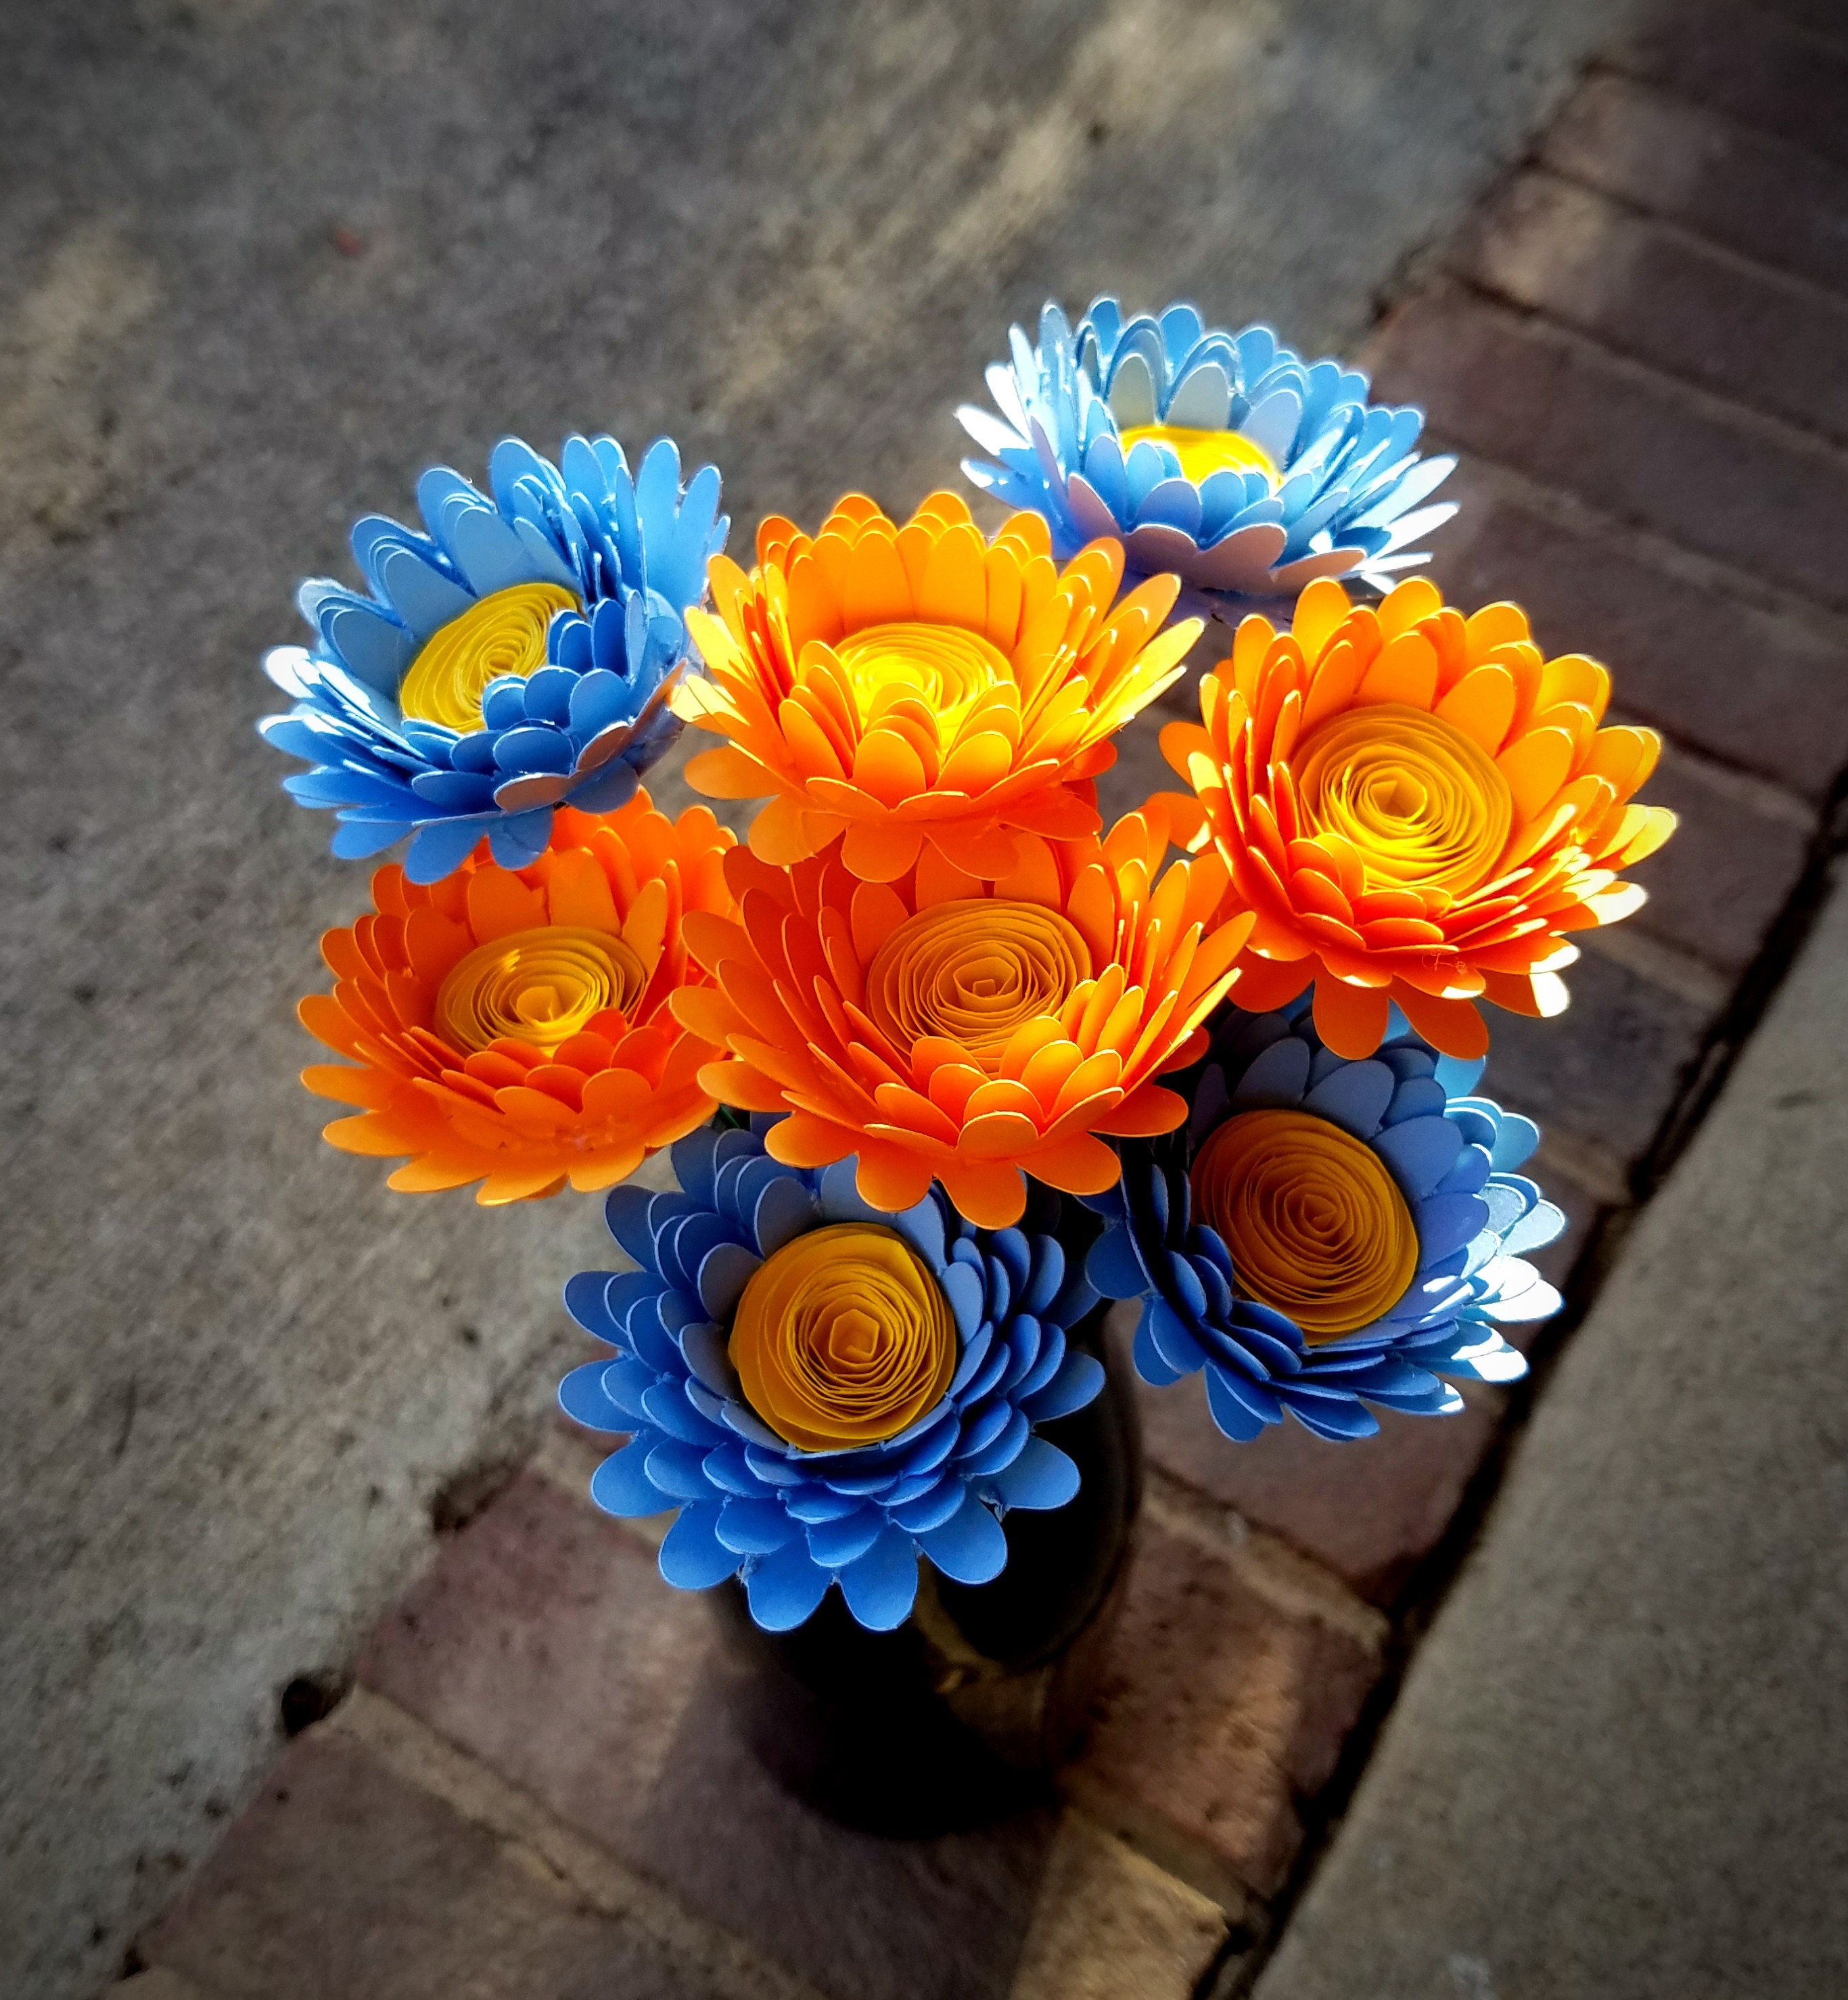 Paper flower bouquet 8 bright orange and baby blue daisies etsy zoom izmirmasajfo